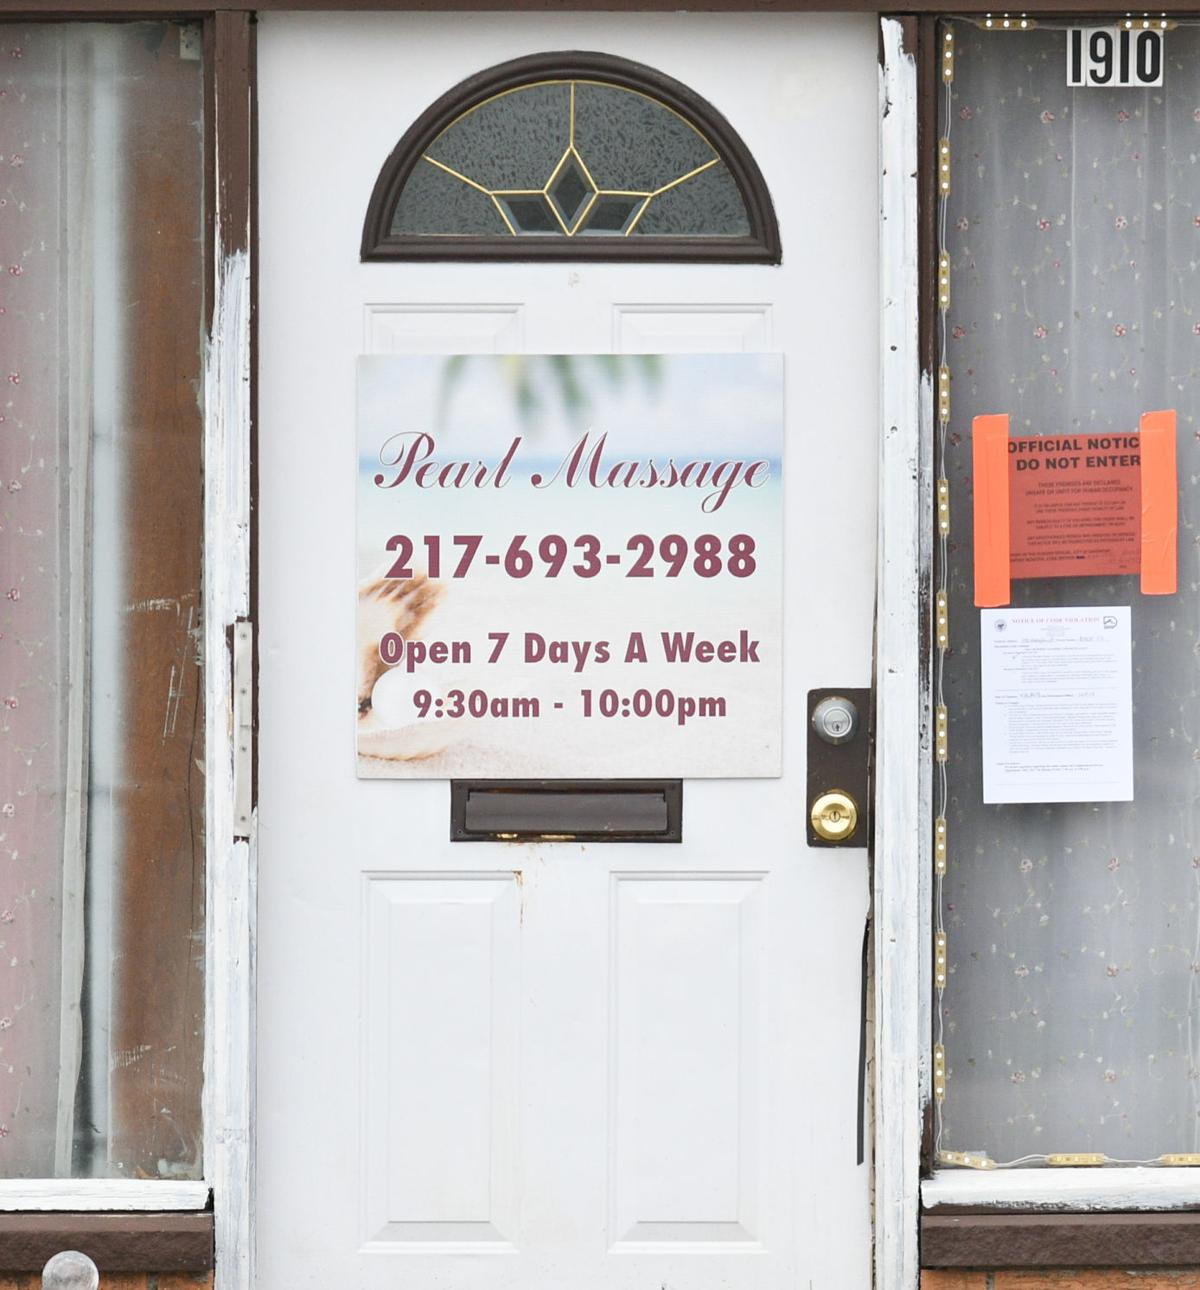 The seedy world of illicit Quad-City massage parlors: Police are